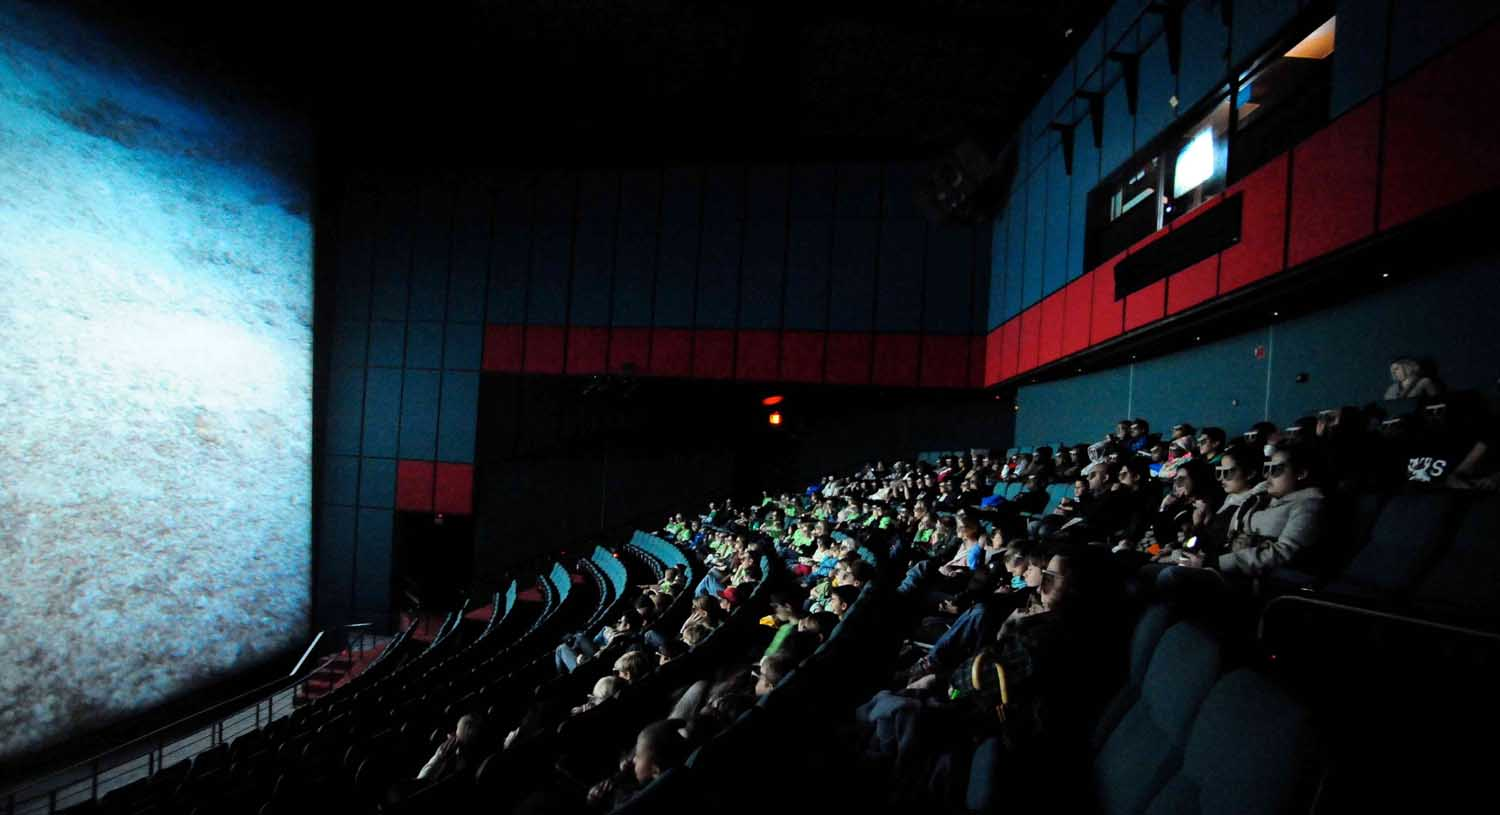 people in Movie Theatre image